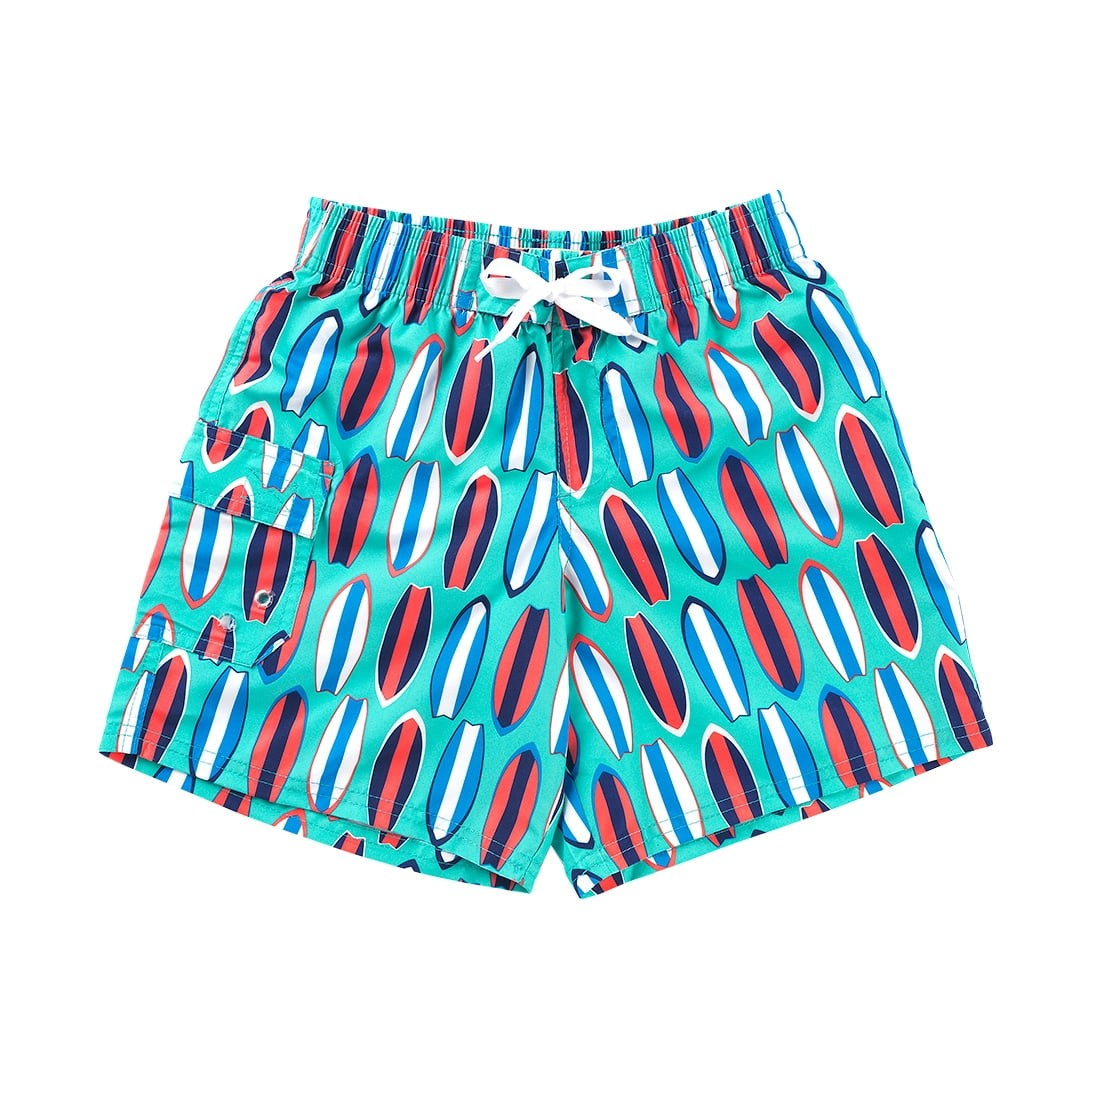 Wave Rider Boy's or Girl's Swim Trunks Suit Cover Beach Shorts - the-southern-magnolia-too